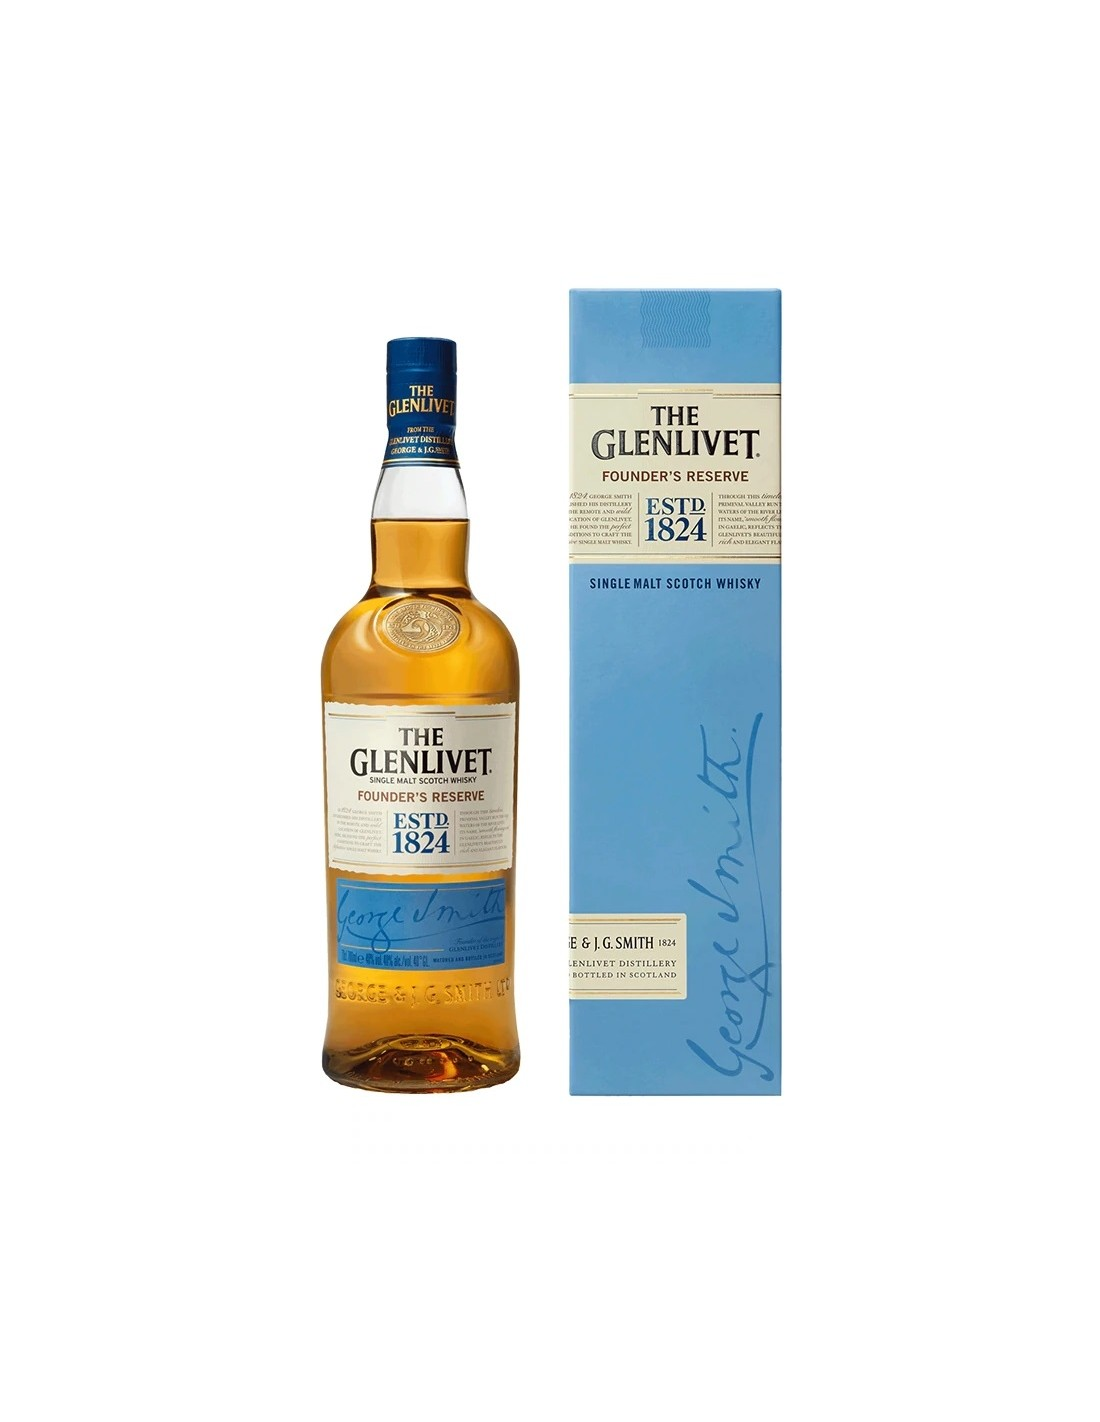 Whisky The Glenlivet Founder's Reserve, 40% alc., 0.7L, Scotia